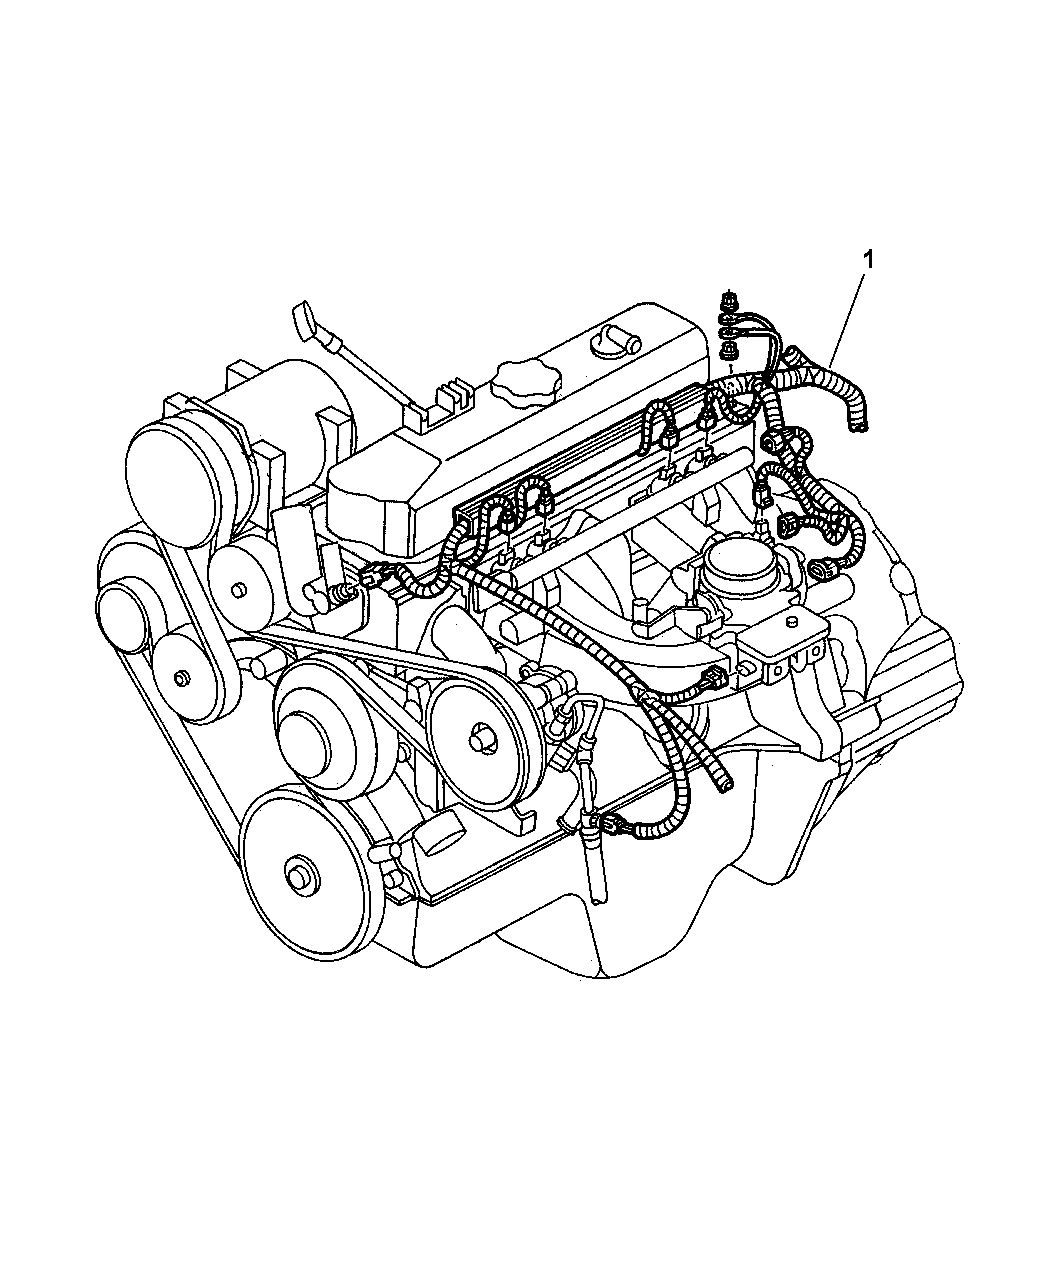 2003 Dodge Dakota Wiring - Engine